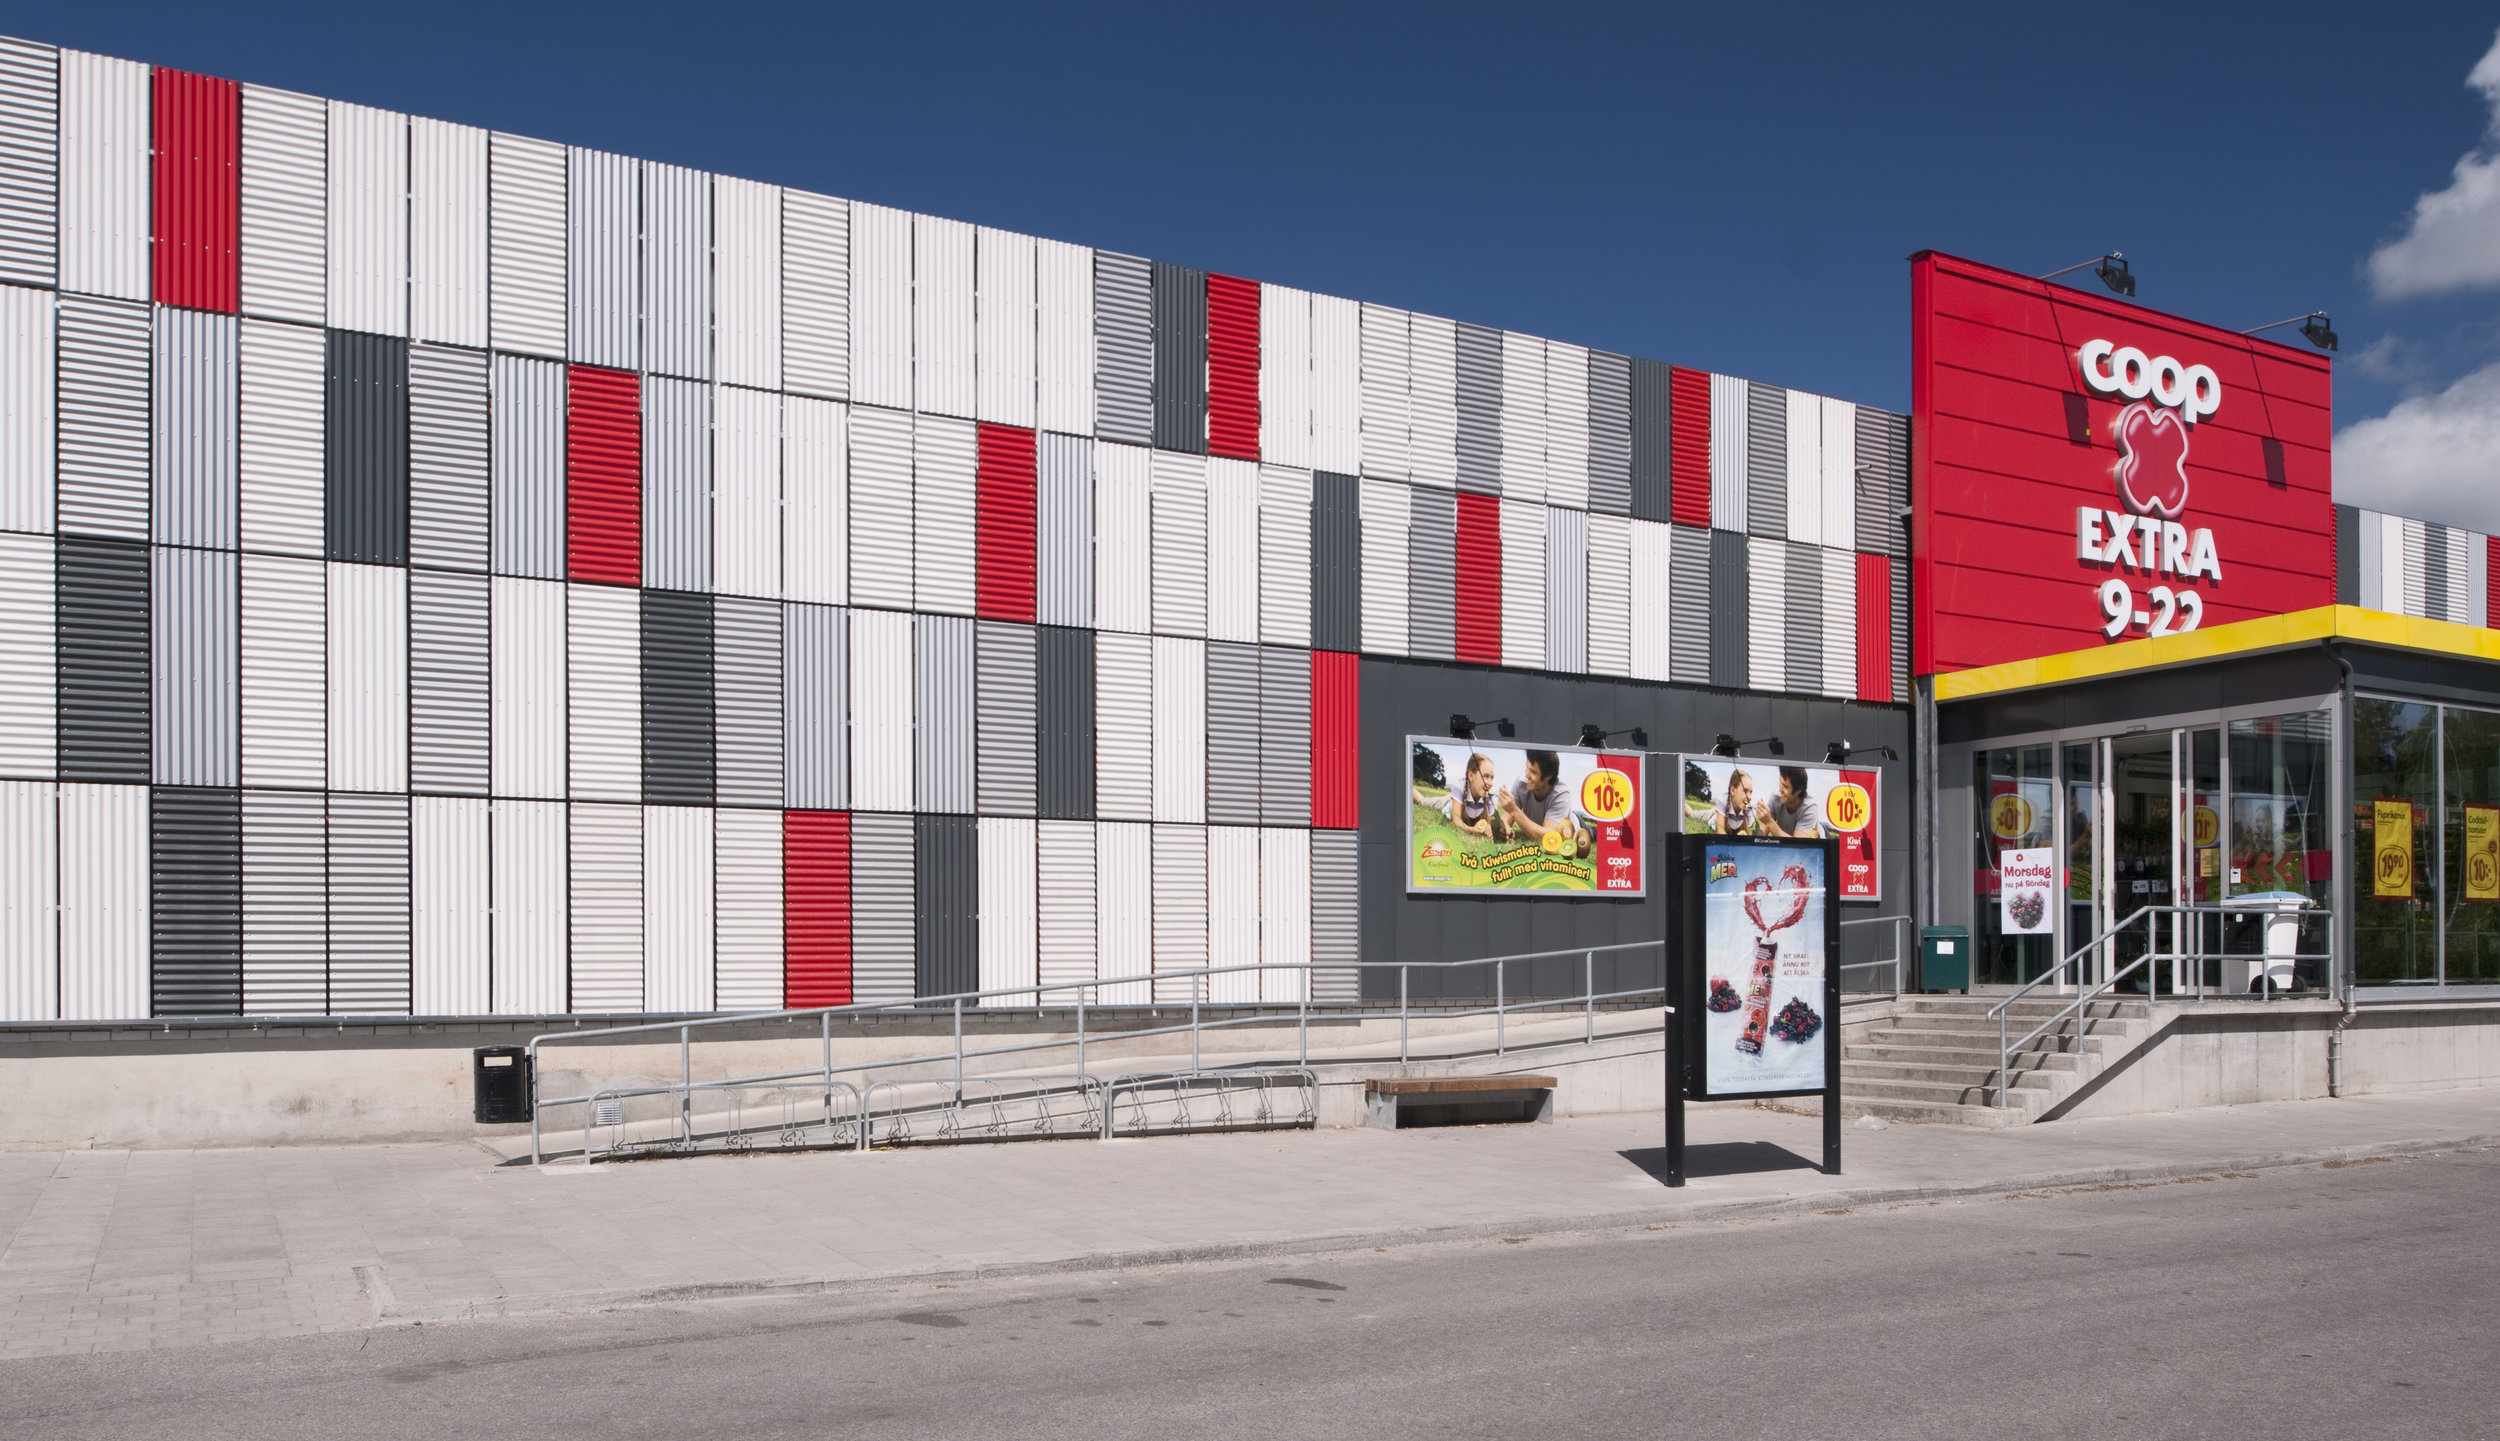 KF Fastigheter  / Assignment at BLINK / Project: Coop Extra facade concept / Role in project: Creative Director / Photos by BLINK